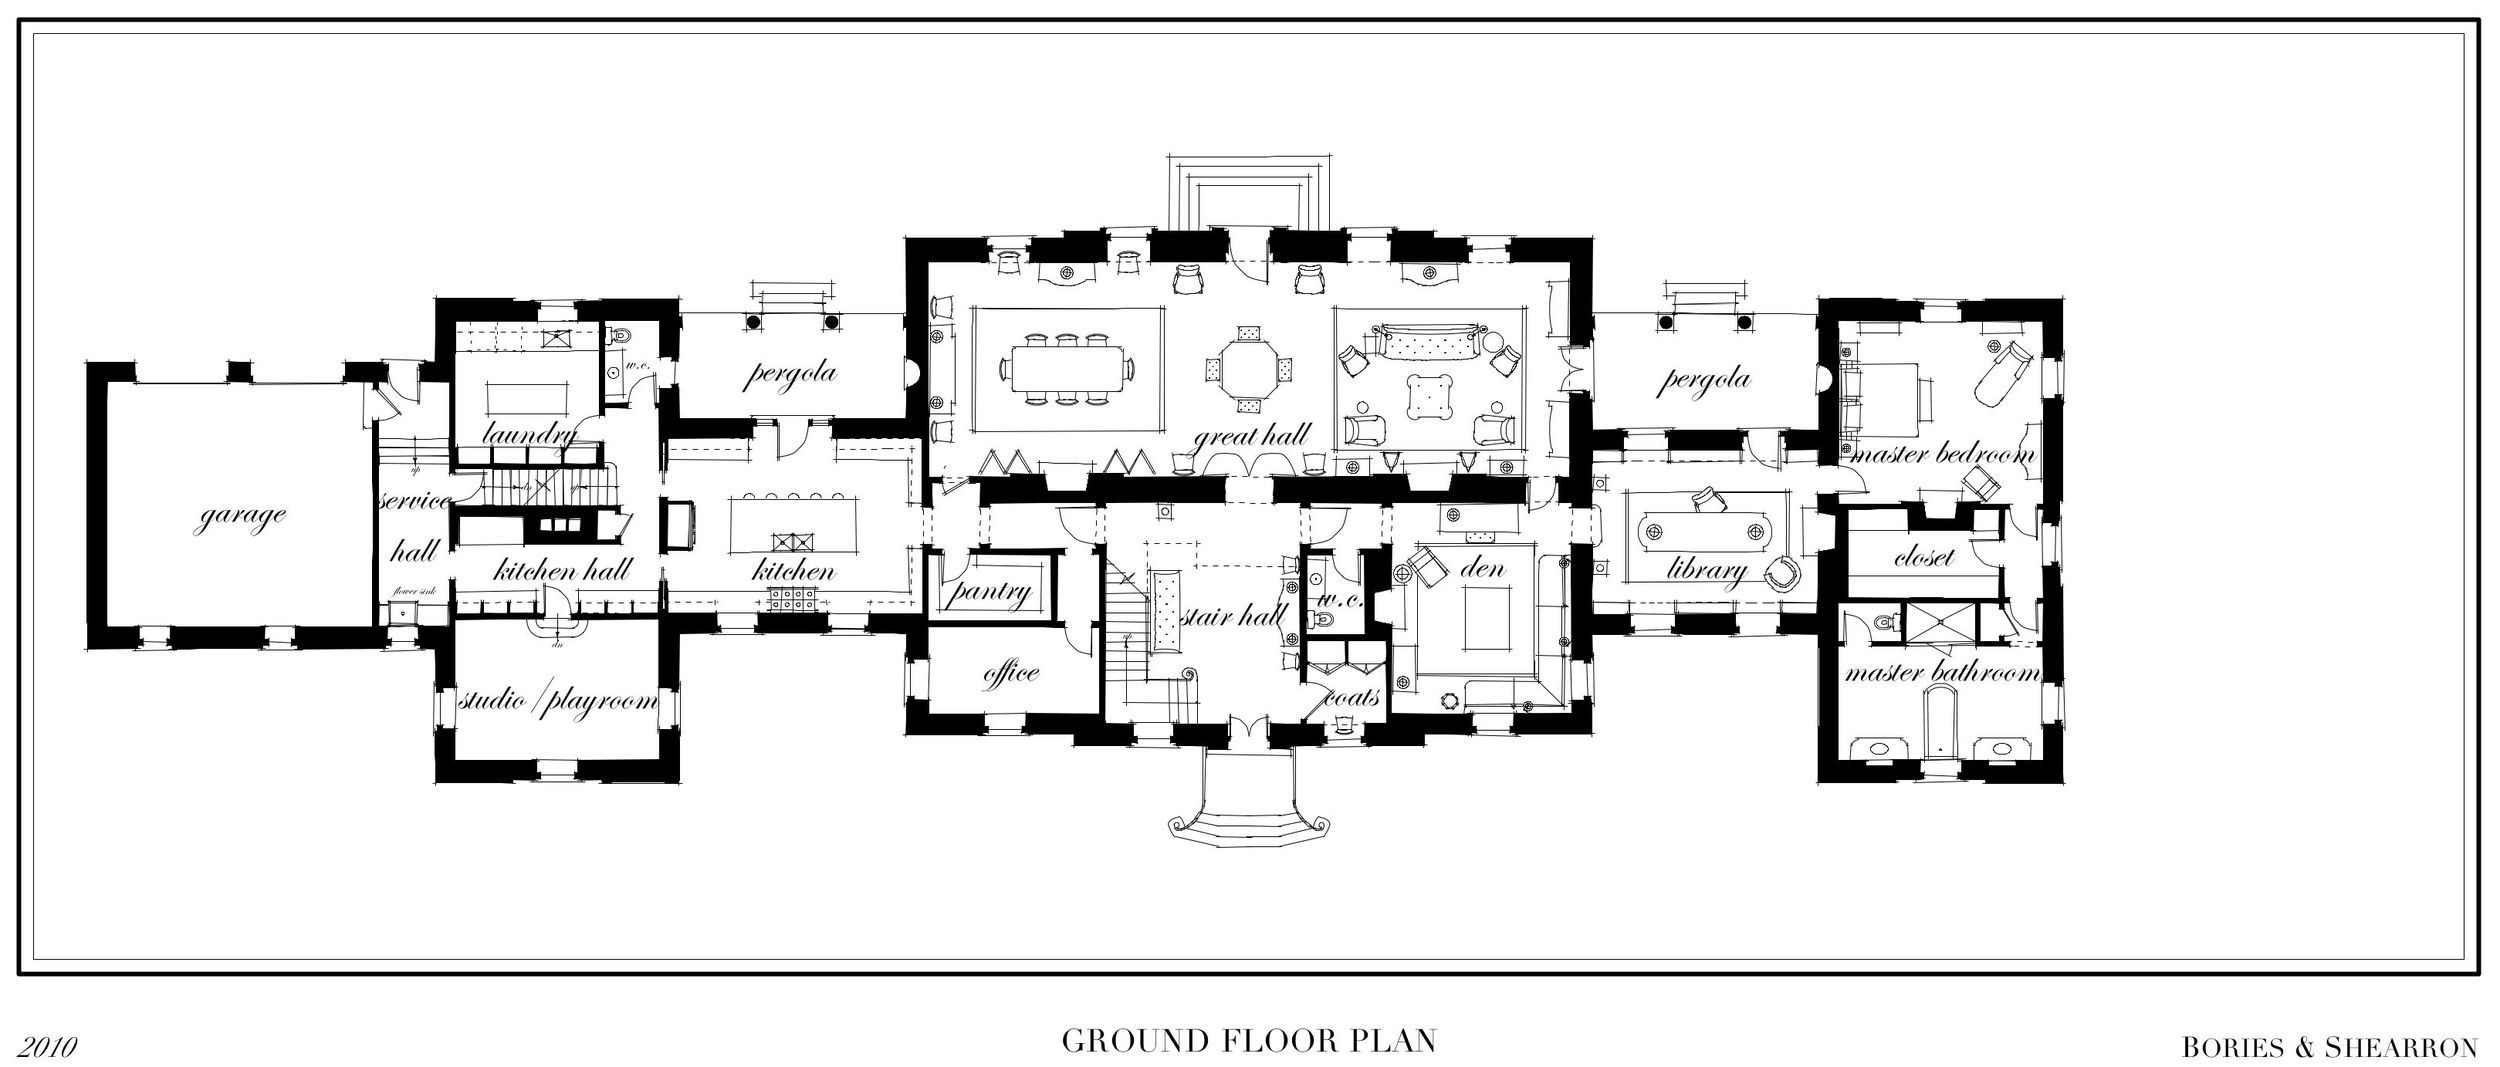 Pin by Christa Conklin on Floor plans | Floor plans, How to ... Palladian House Plans on sedona house plans, chateau house plans, lexington house plans, federal house plans, windsor house plans, advanced house plans, drive under garage house plans, english garden house plans, bay house plans, palmetto house plans, plantation house plans, british manor house plans, vienna house plans, regency house plans, english manor house plans, tudor house plans, oakbrook house plans, edwardian house plans, keystone house plans, avalon house plans,